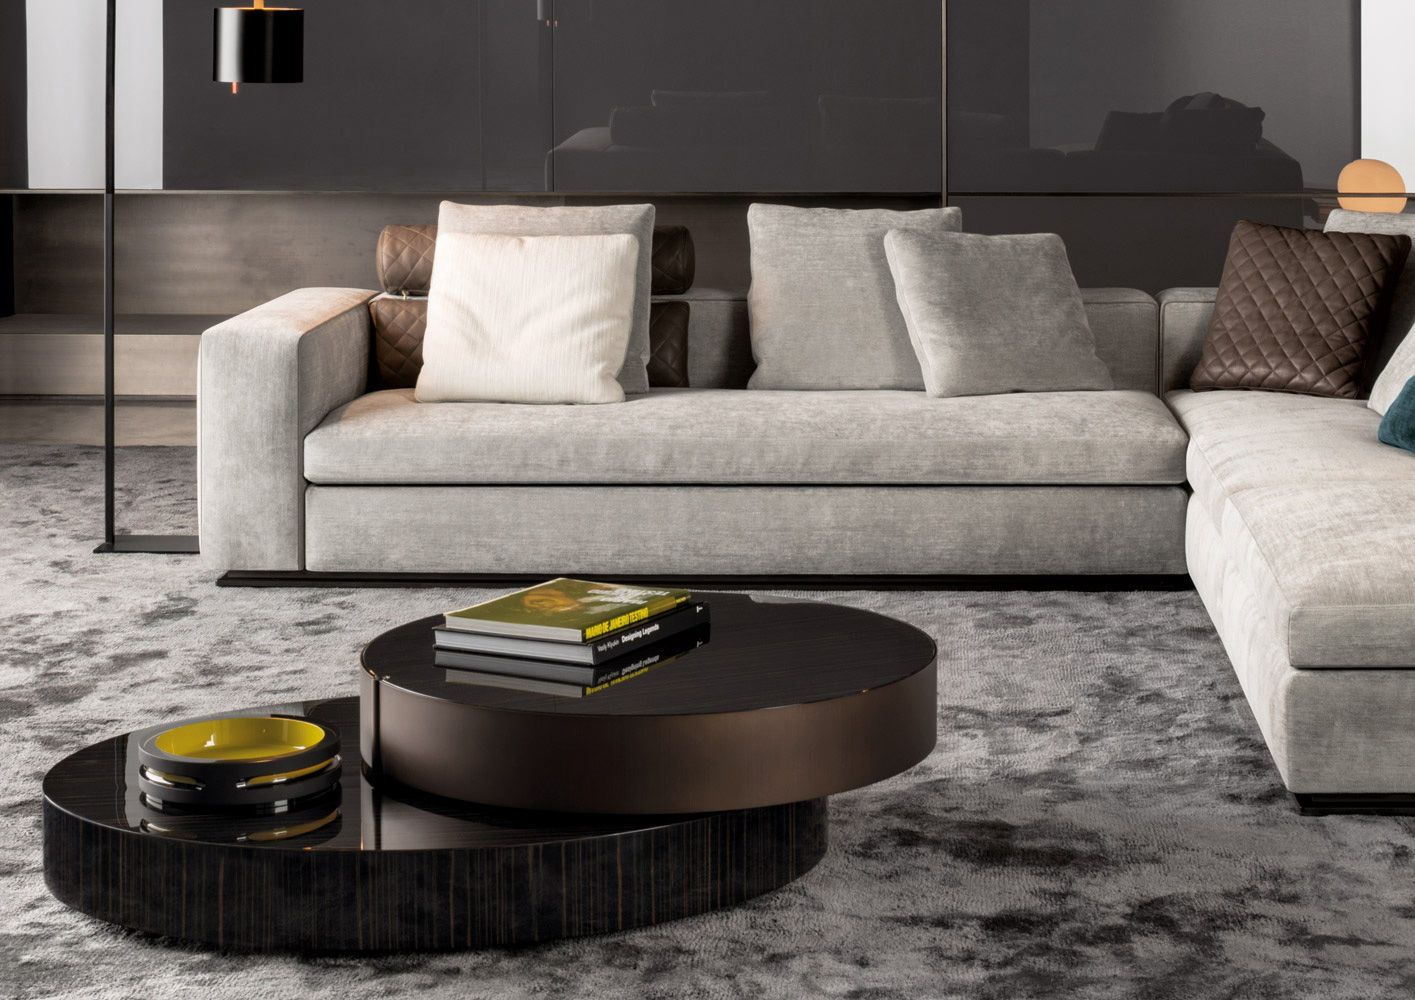 Superb LEONARD   Designer Lounge Sofas From Minotti ✓ All Information ✓  High Resolution Images ✓ CADs ✓ Catalogues ✓ Contact Information ✓ Find  Your.